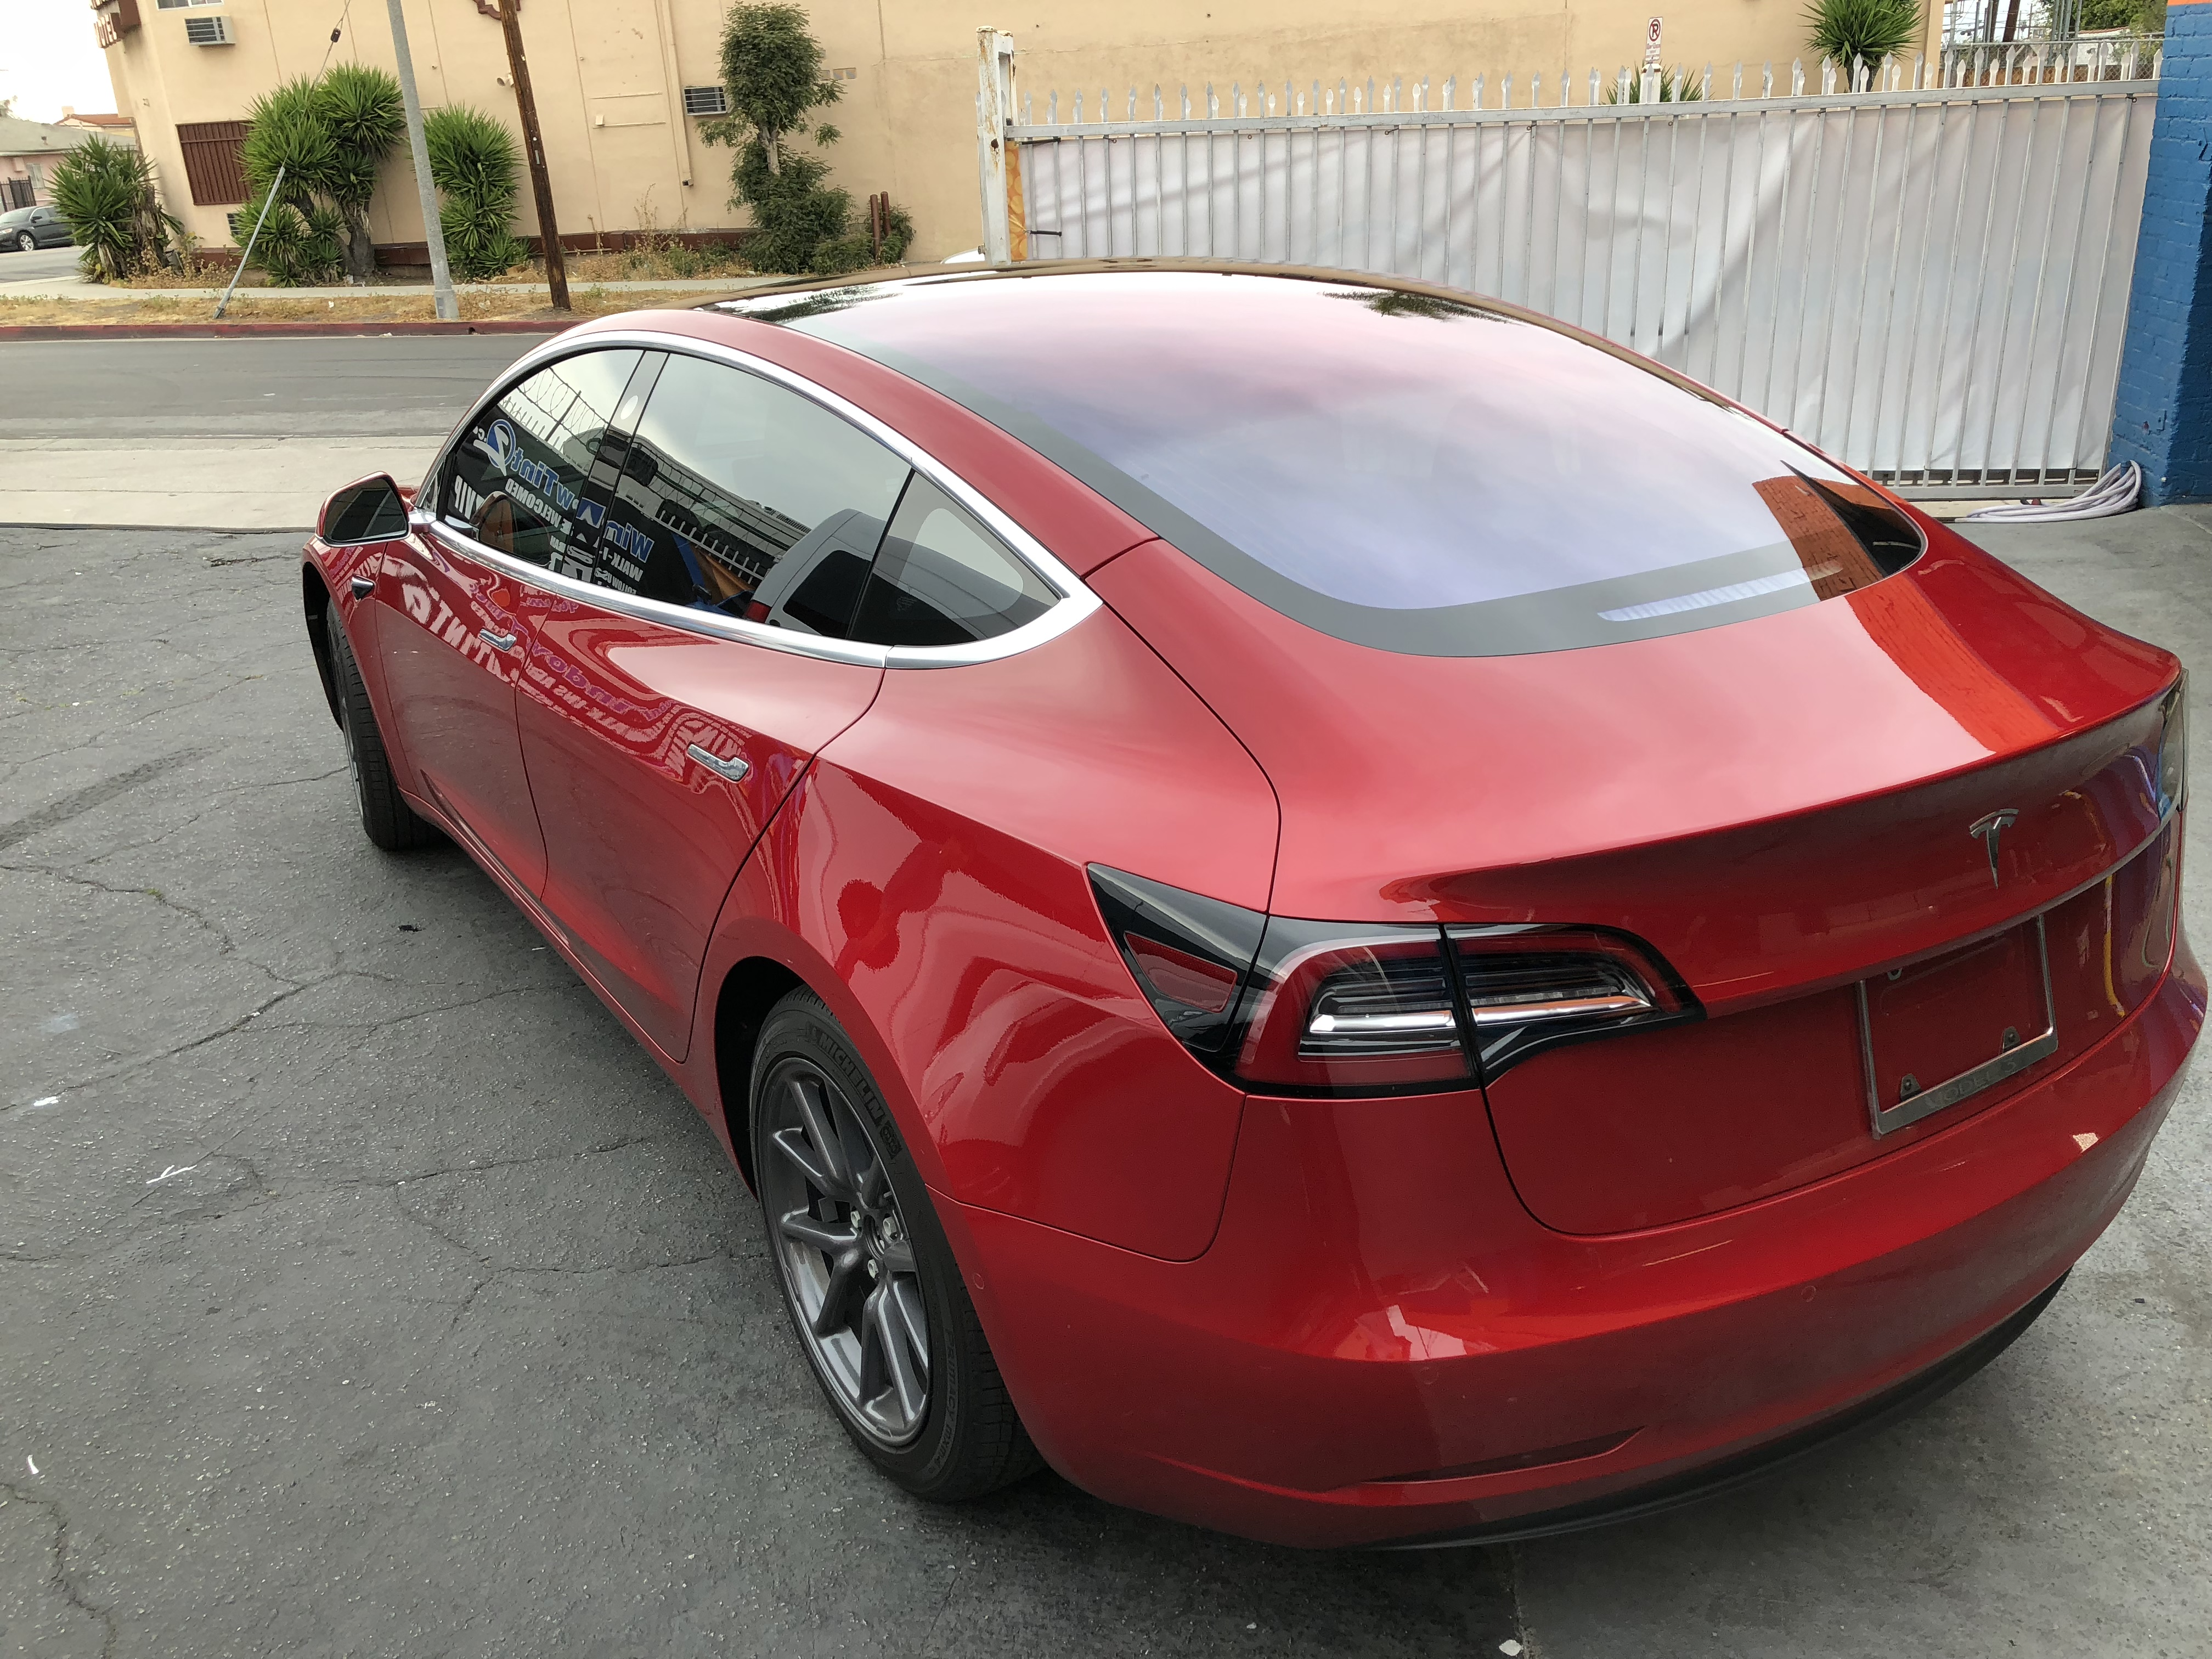 Huper Optik Ceramic Tint 30% shade - 2018 Tesla Model 3